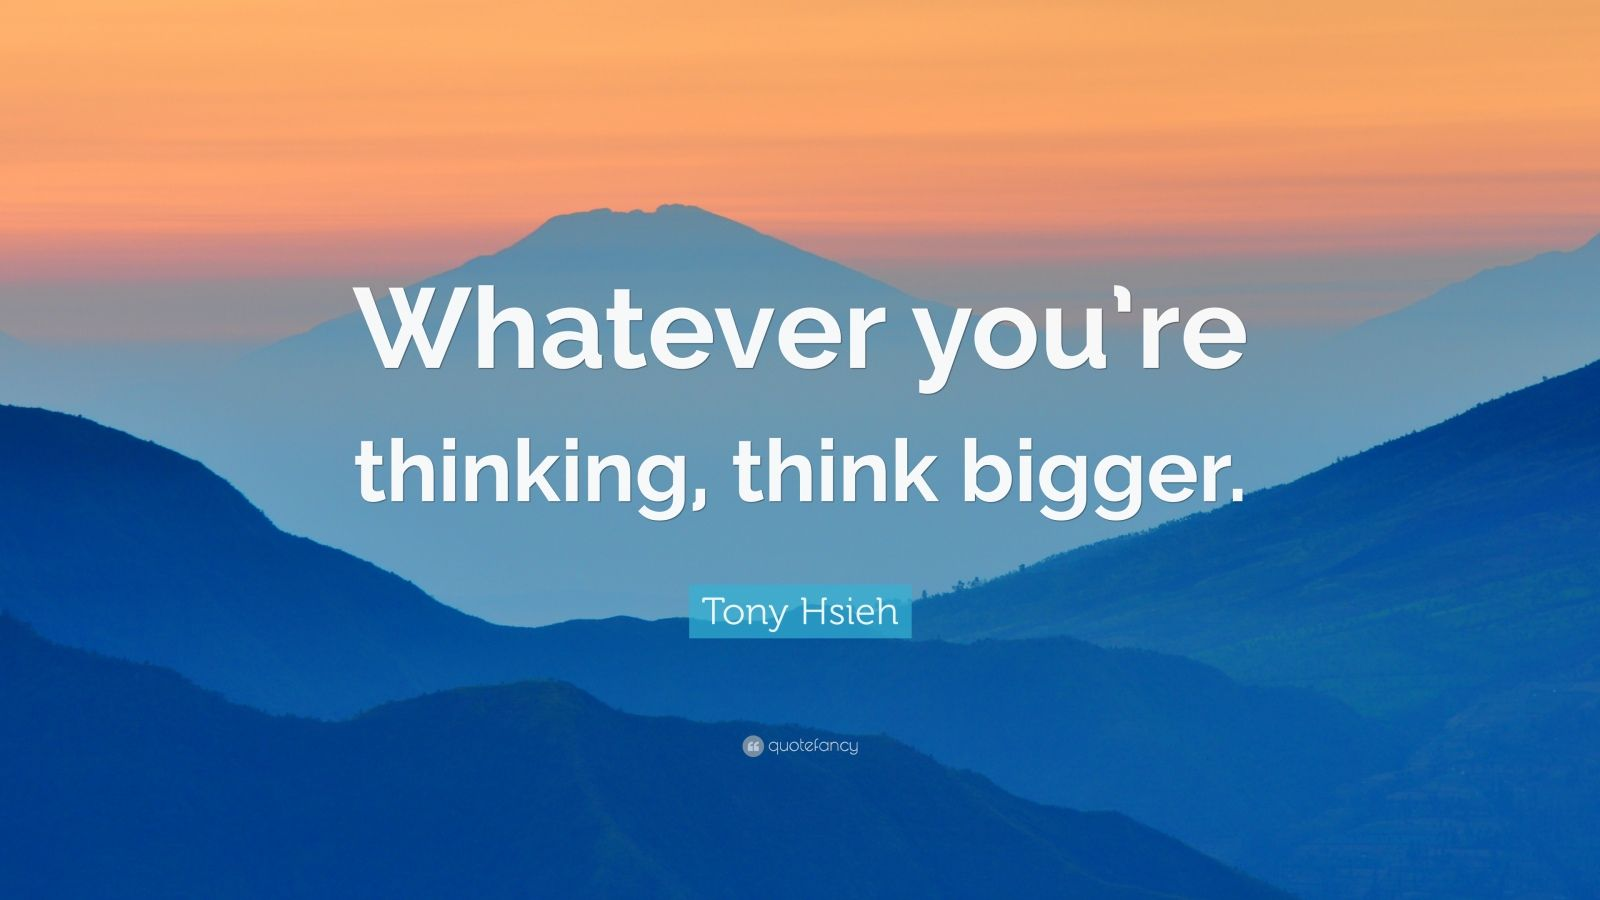 Elon Musk Quotes Wallpapers Tony Hsieh Quote Whatever You Re Thinking Think Bigger